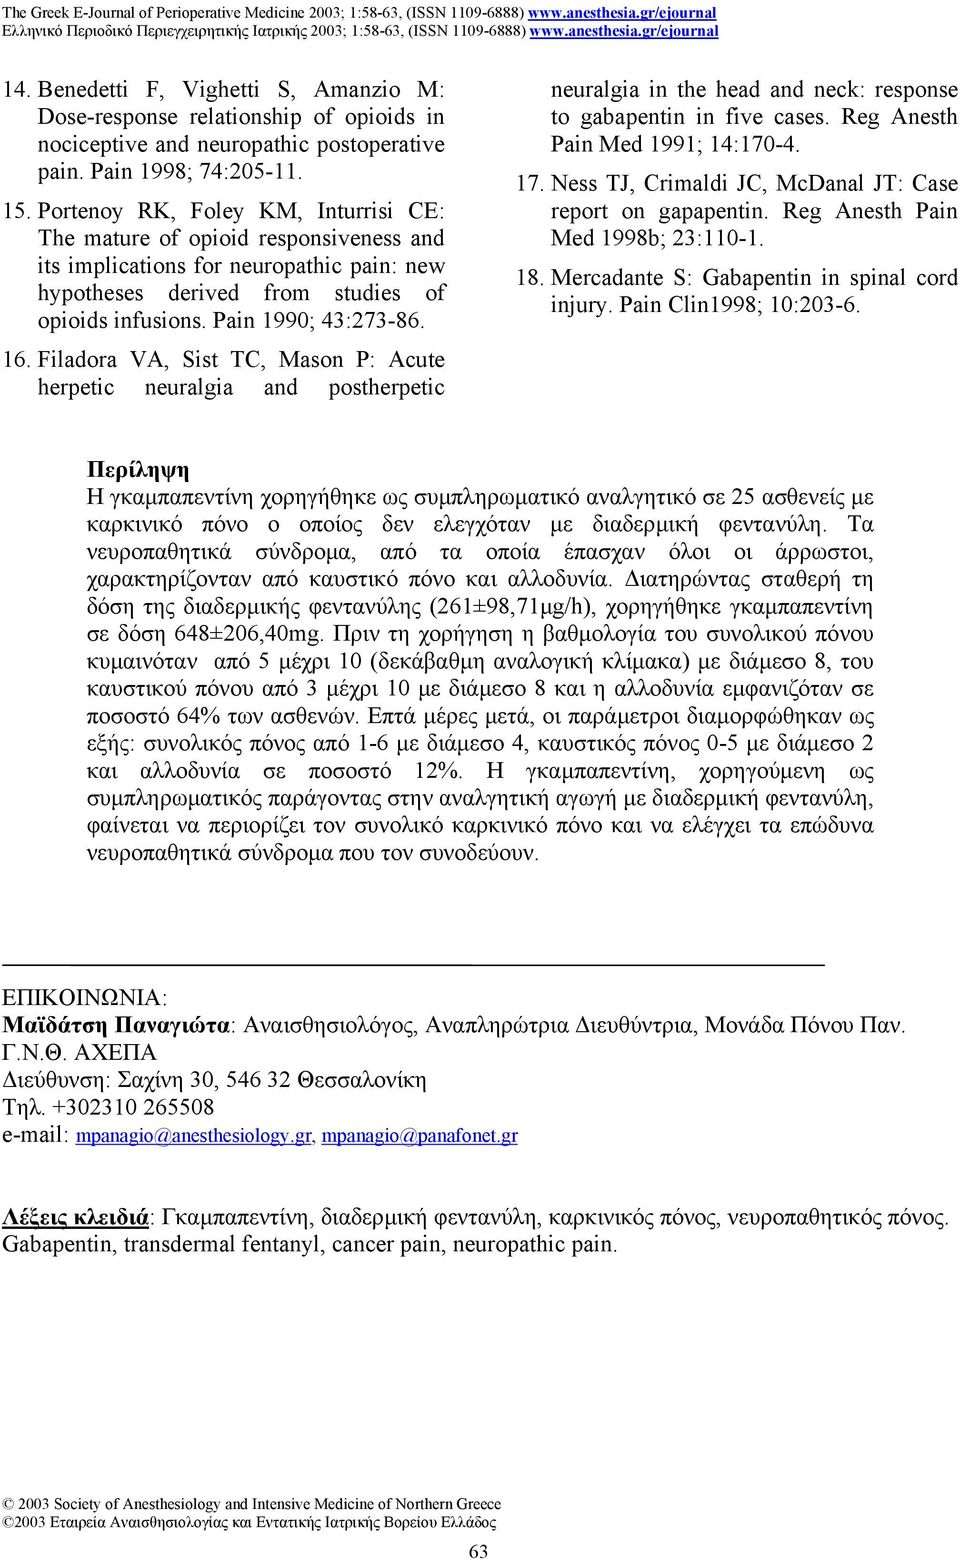 Filadora VA, Sist TC, Mason P: Acute herpetic neuralgia and postherpetic neuralgia in the head and neck: response to gabapentin in five cases. Reg Anesth Pain Med 1991; 14:170-4. 17.